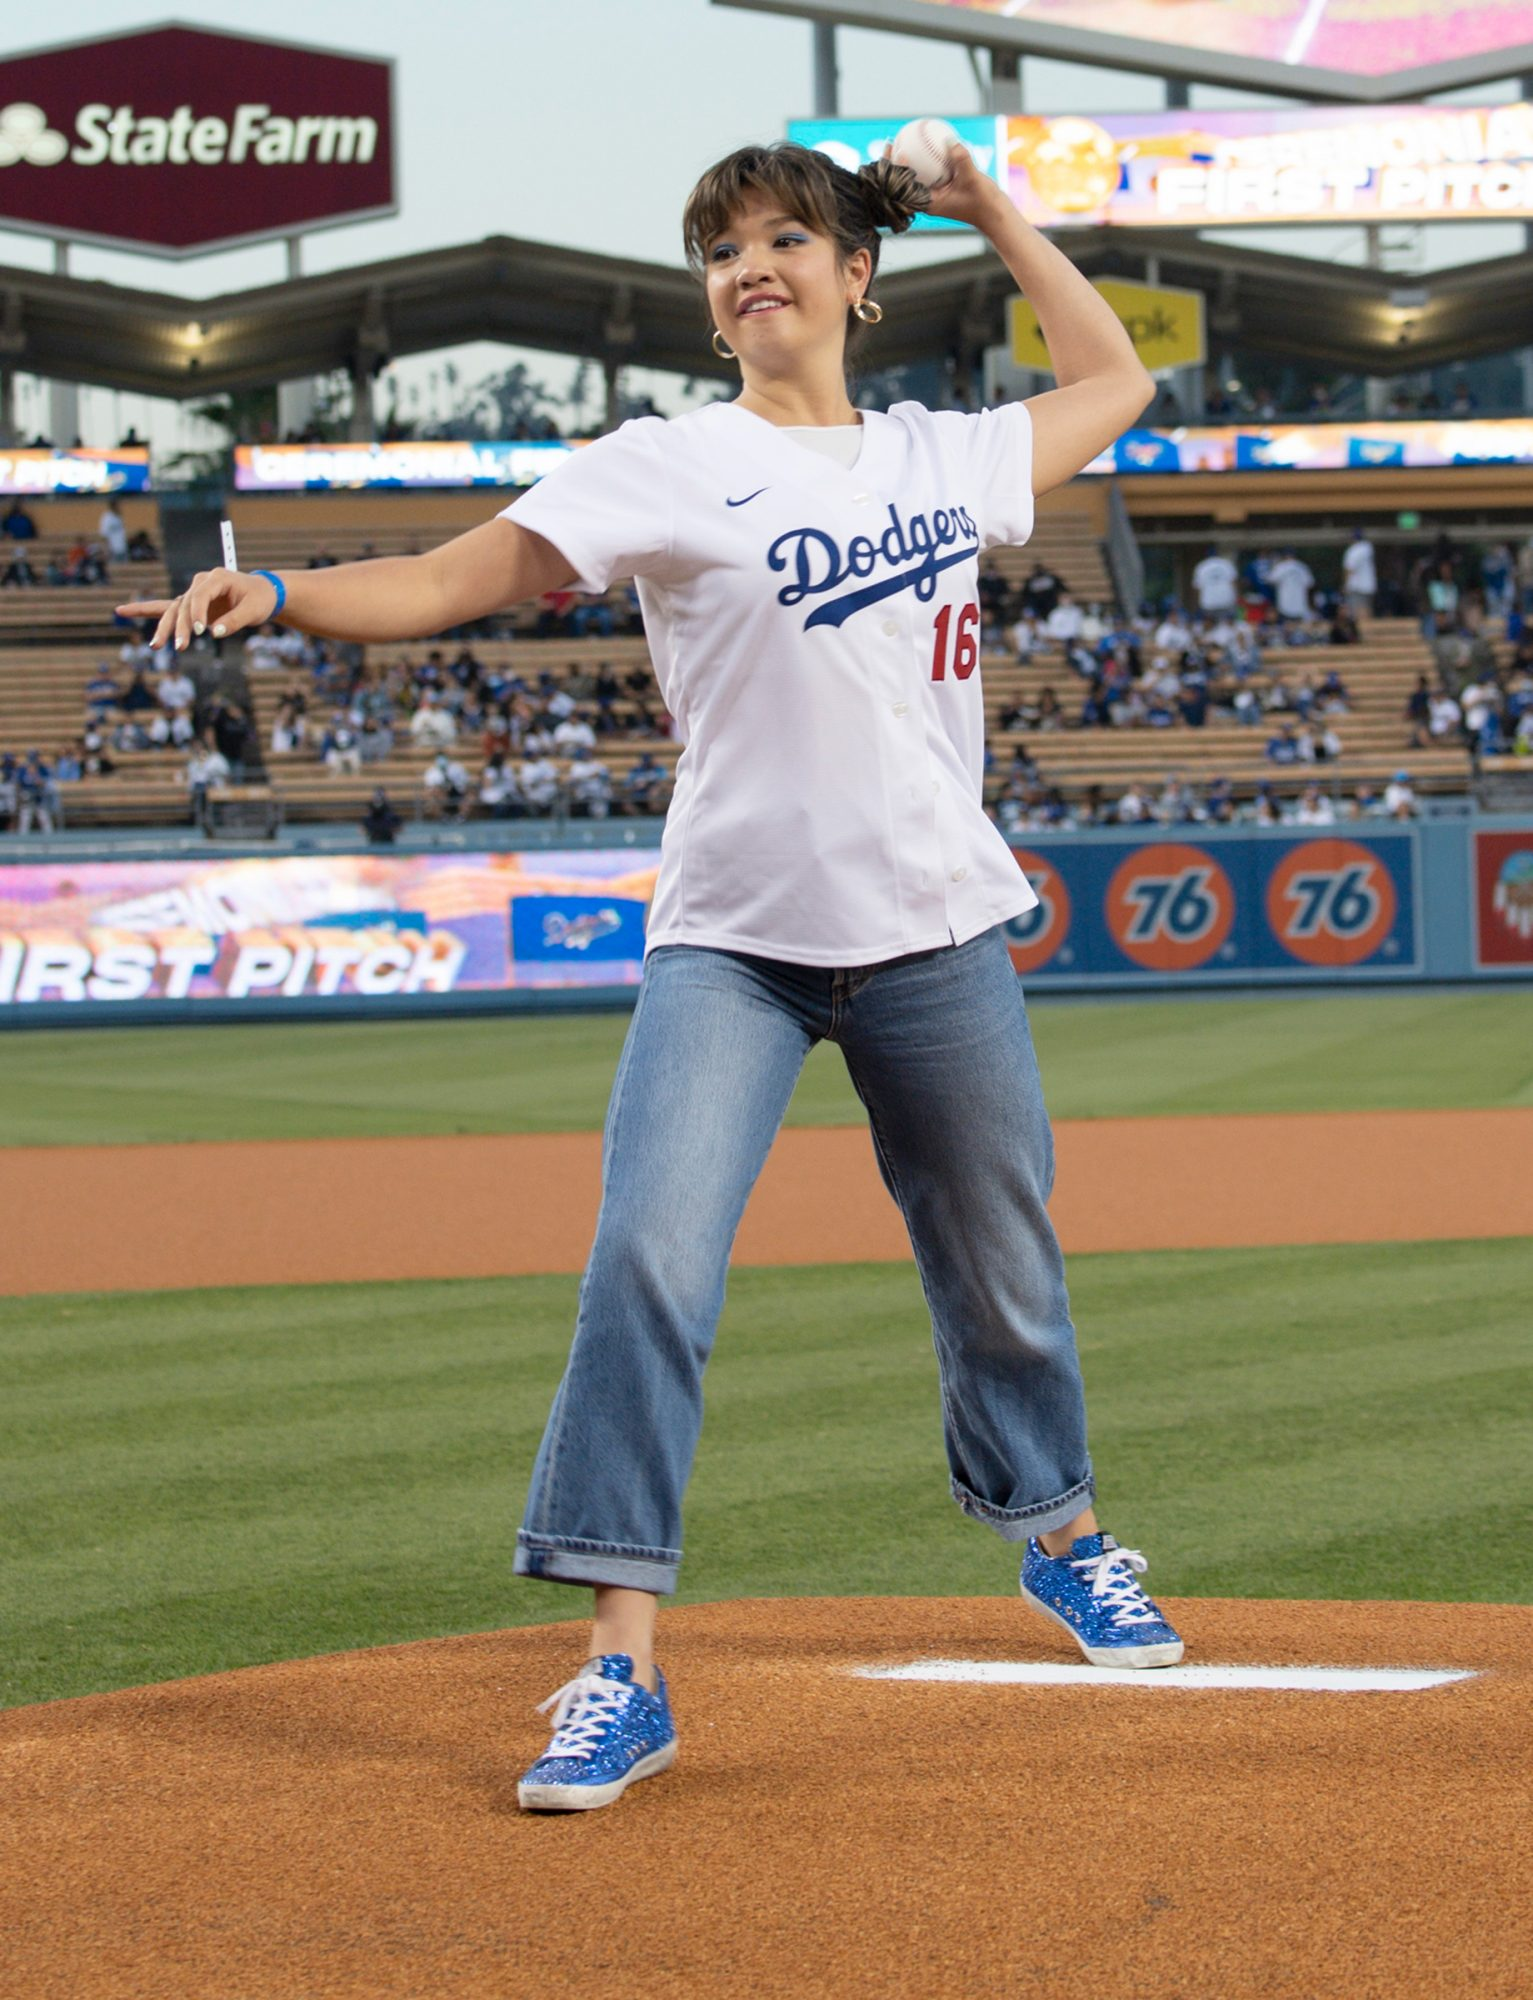 """Peyton Elizabeth Lee, star of the Disney+ Original Series """"Doogie Kamealoha, M.D.,"""" throws out the first pitch at the Los Angeles Dodgers versus Arizona Diamondbacks Game at Dodger Stadium on Tuesday, September 14"""